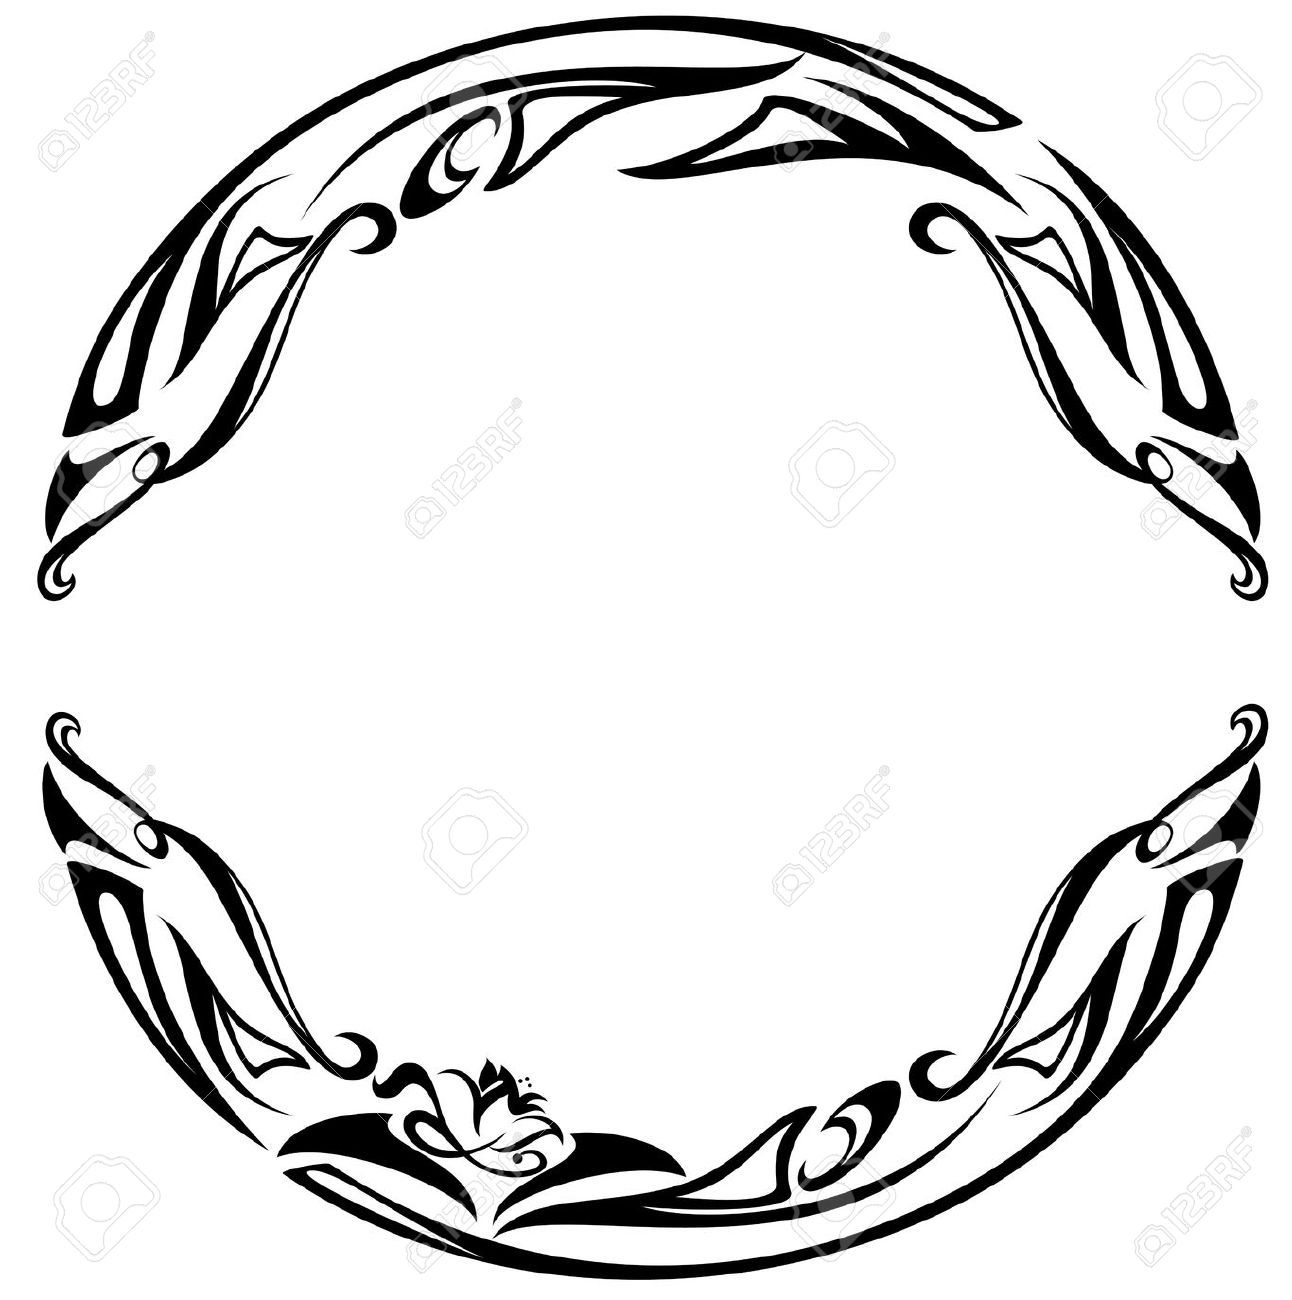 Art Nouveau Style Round Frame - Black And White Abstract ...